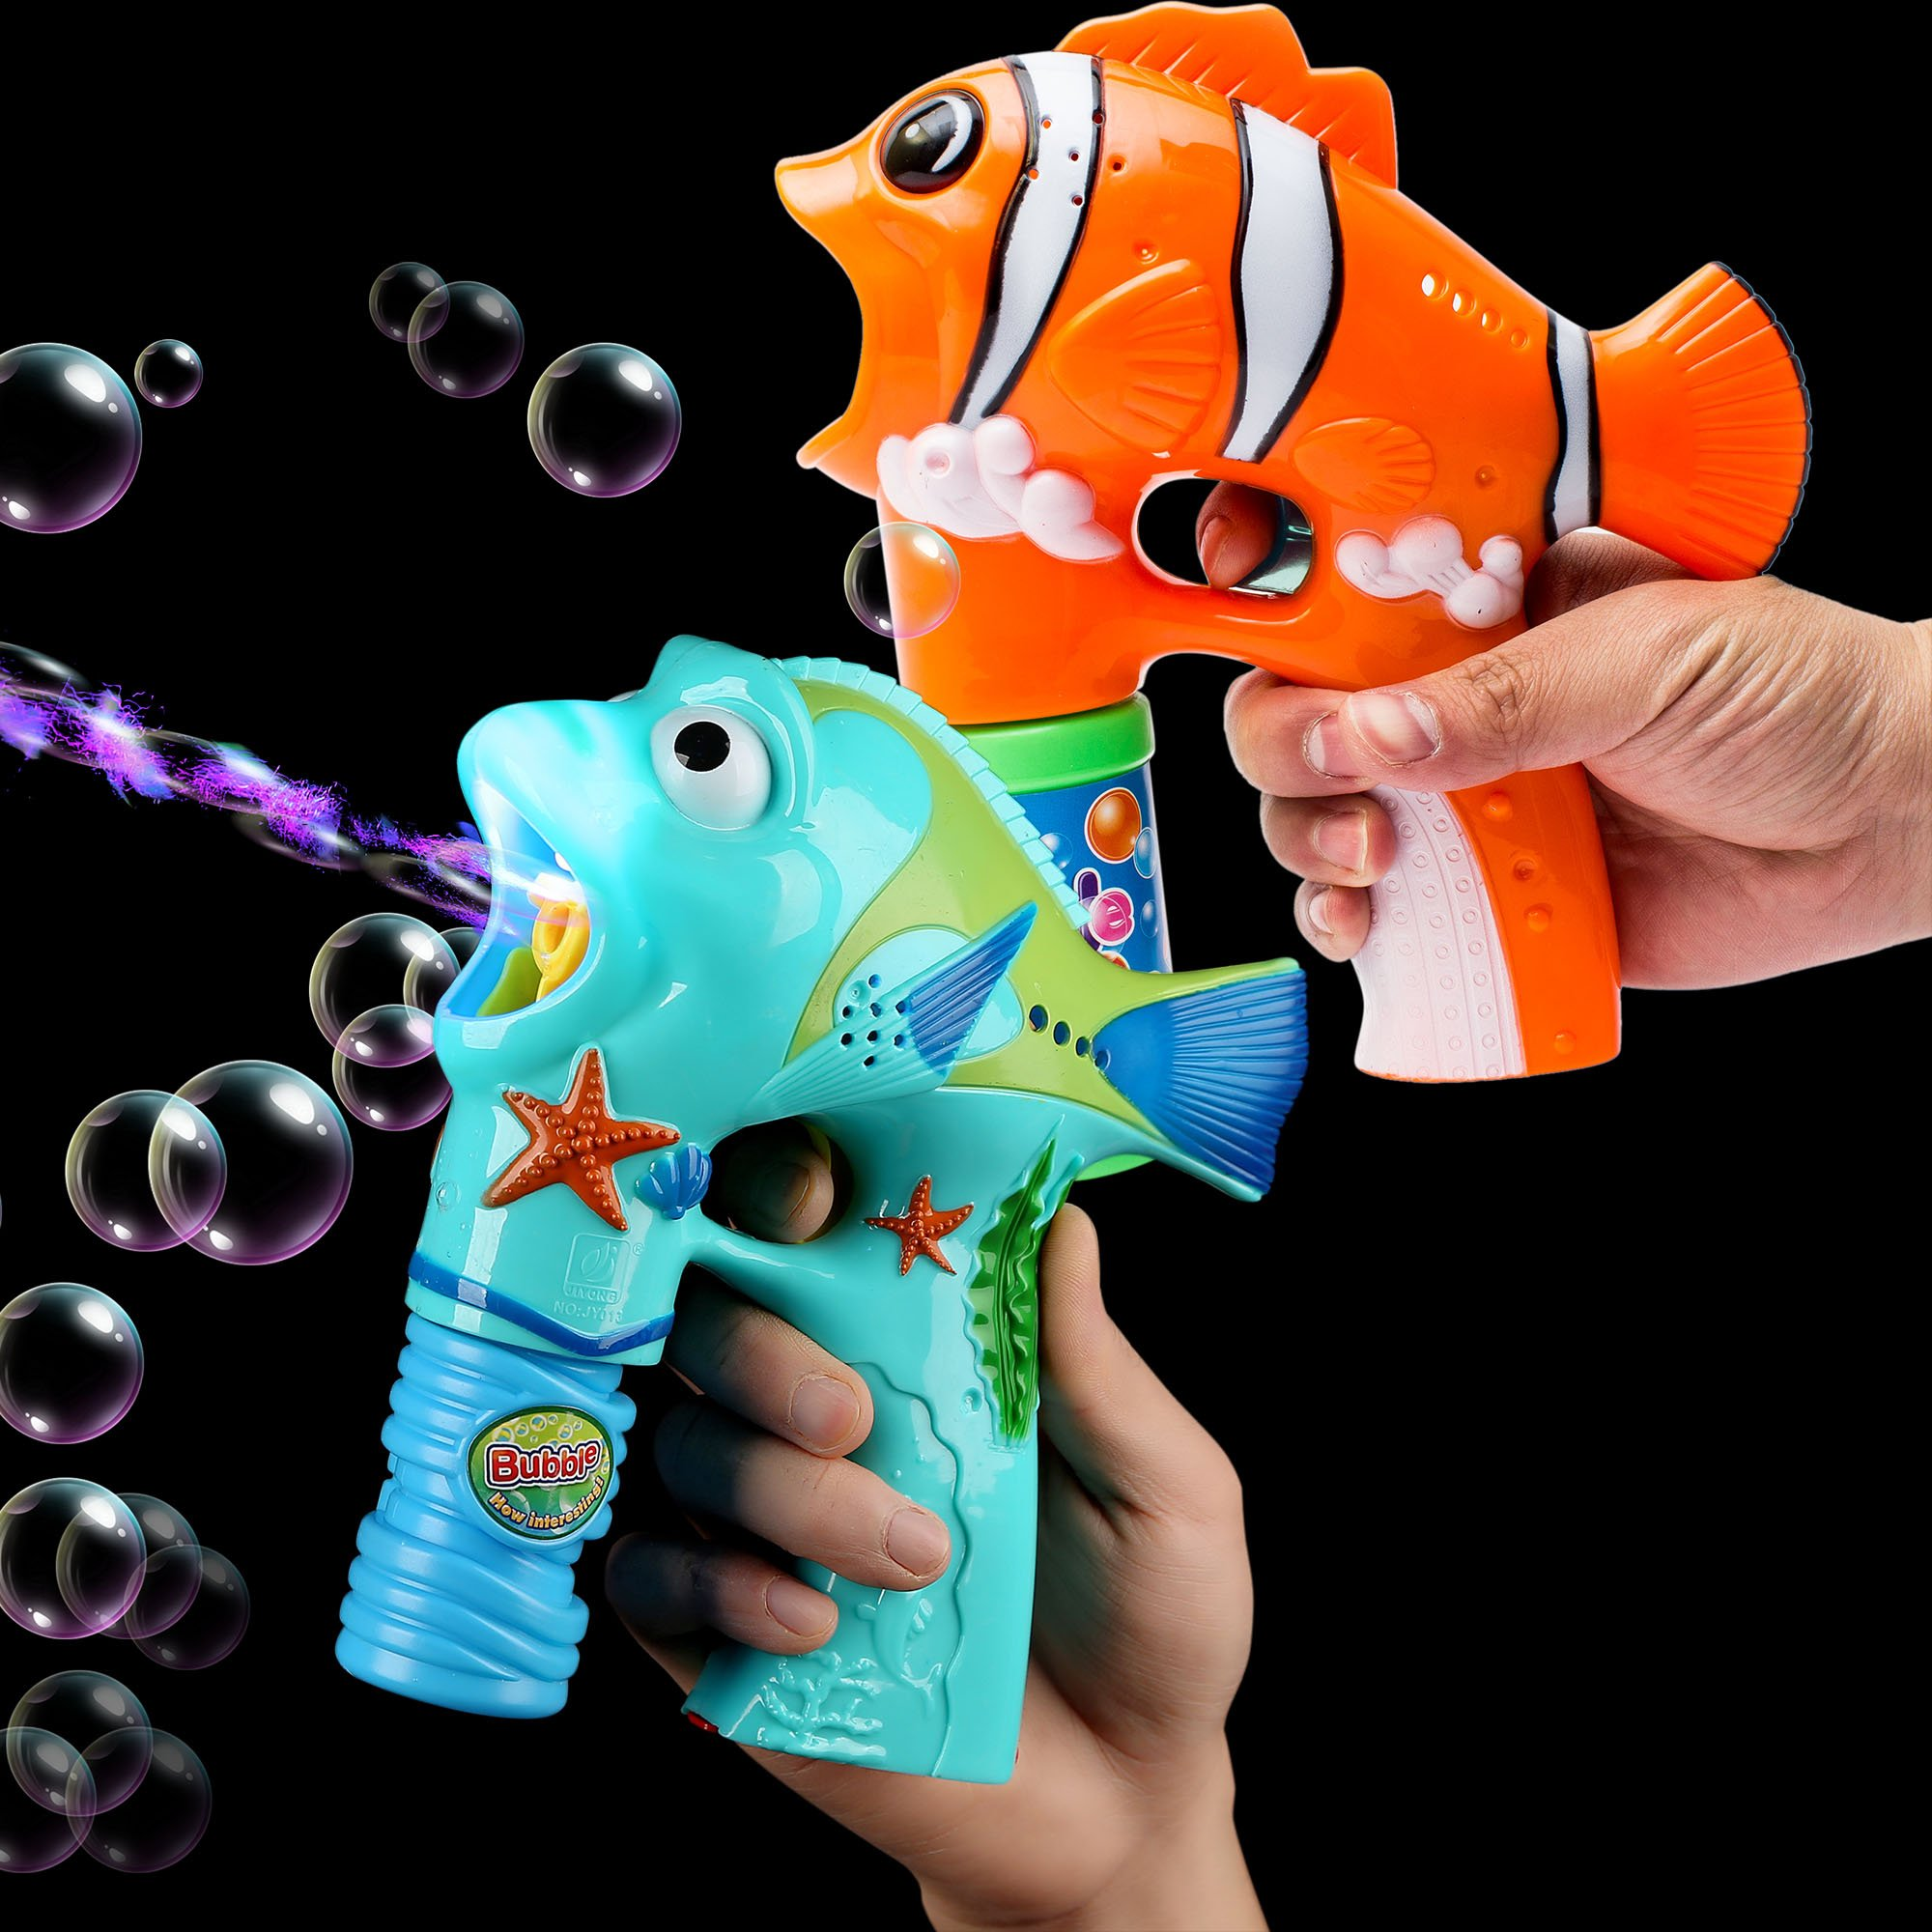 Fun Central BC887, 2 Packs, 6 Inches Fish LED Bubble Gun, Fish Bubbles for Kids, Fish Bubble Toys, Fish Bubble Gun - Assorted